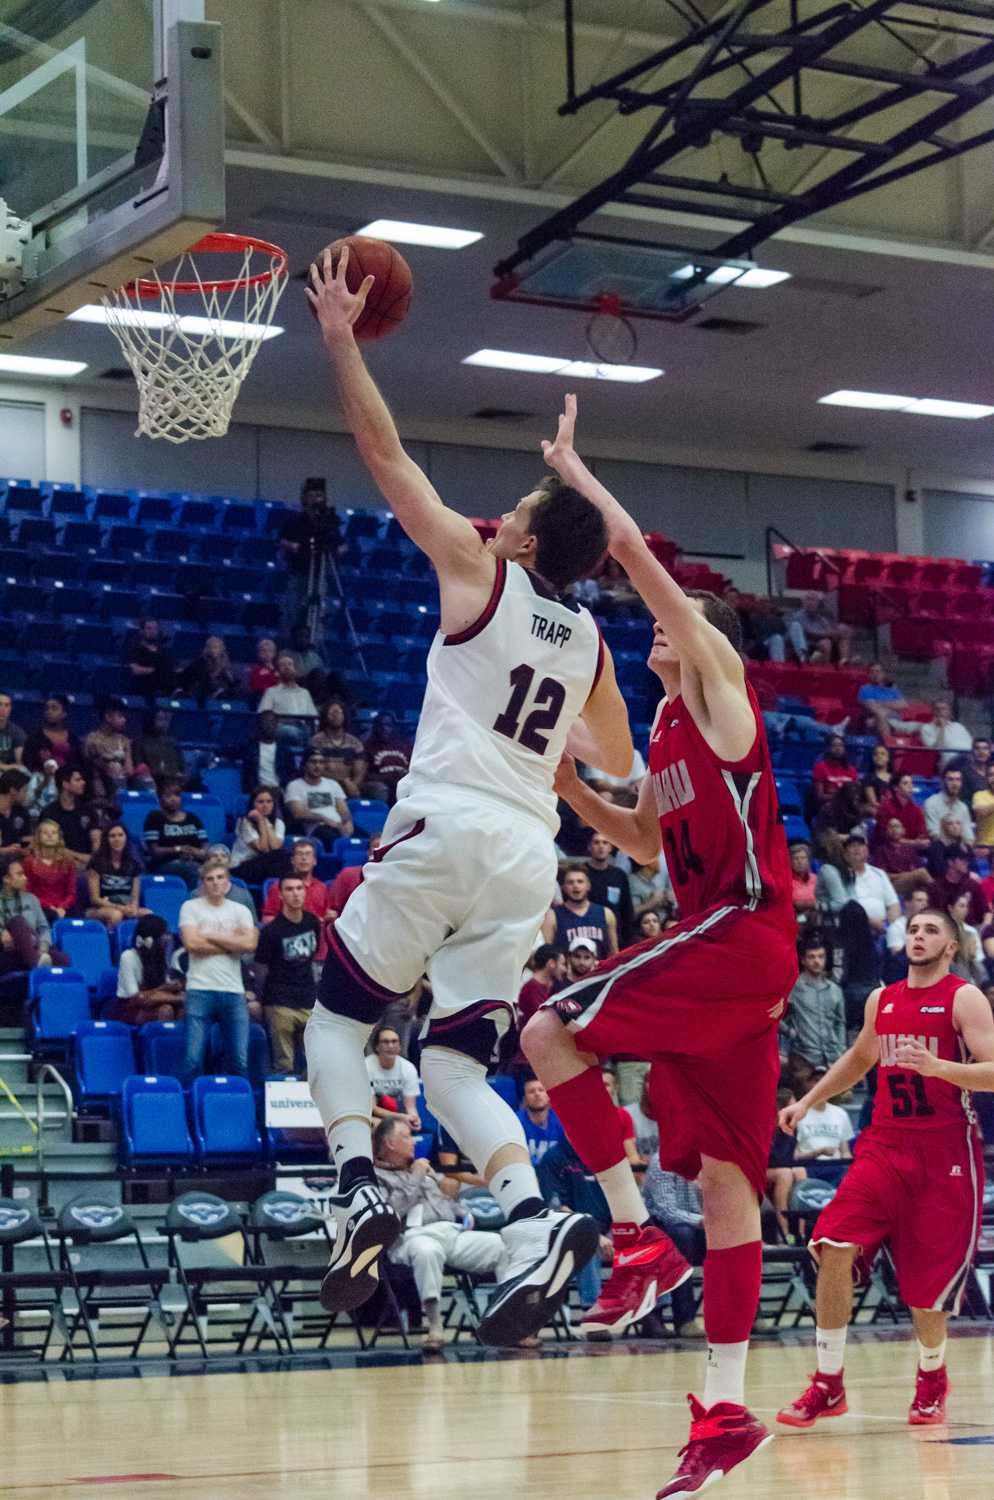 FAU guard Jackson Trapp (12) beats the WKU defense to the basket and uses of the glass to score.